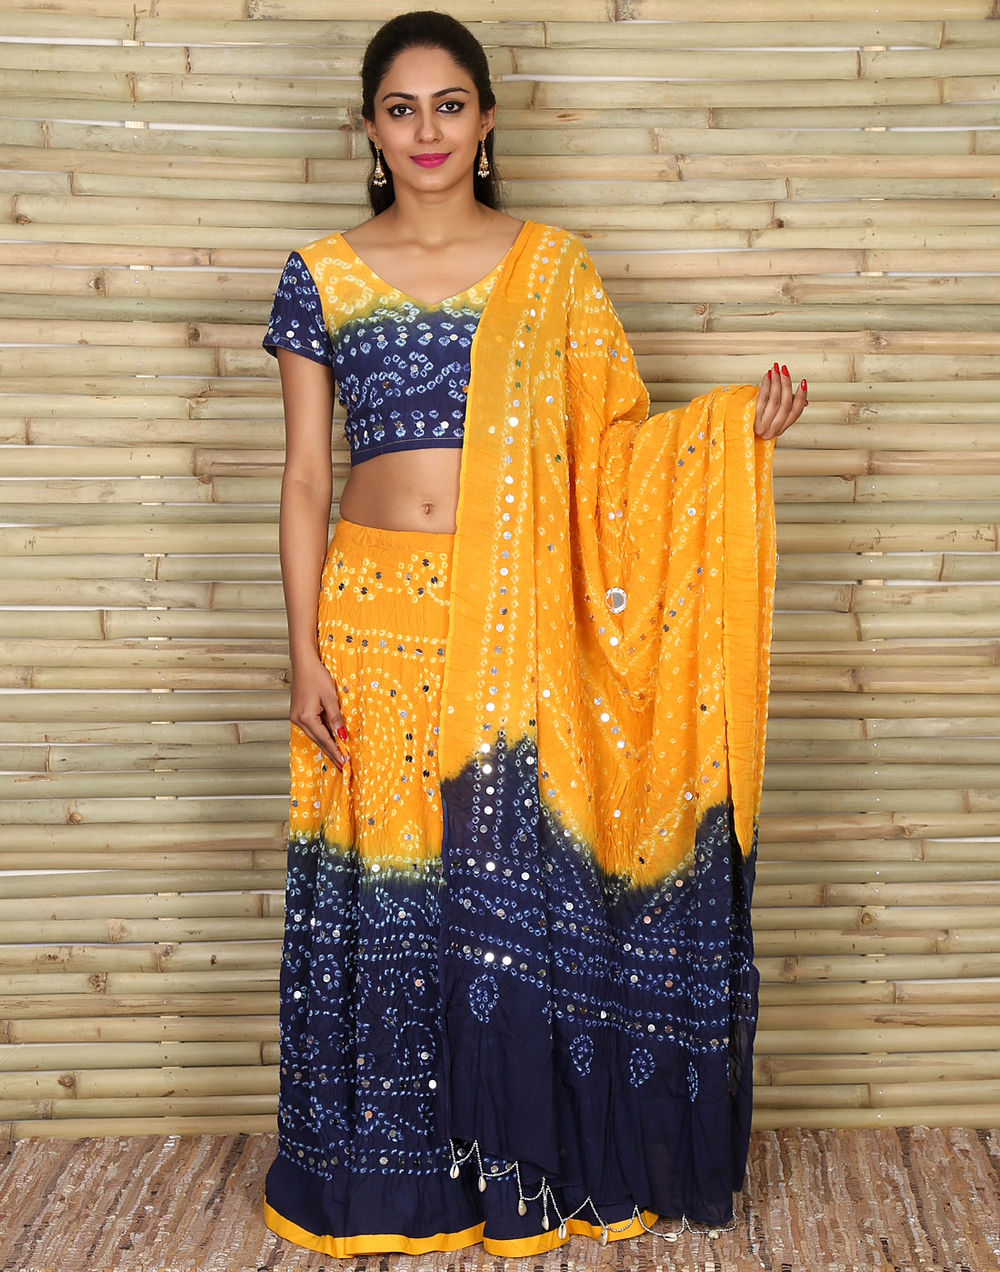 rajasthani dating site Jaipur online dating, best free jaipur dating site 100% free personal ads for jaipur singles find jaipur women and men at searchpartnercom find boys and girls looking for dates, lovers, friendship, and fun.